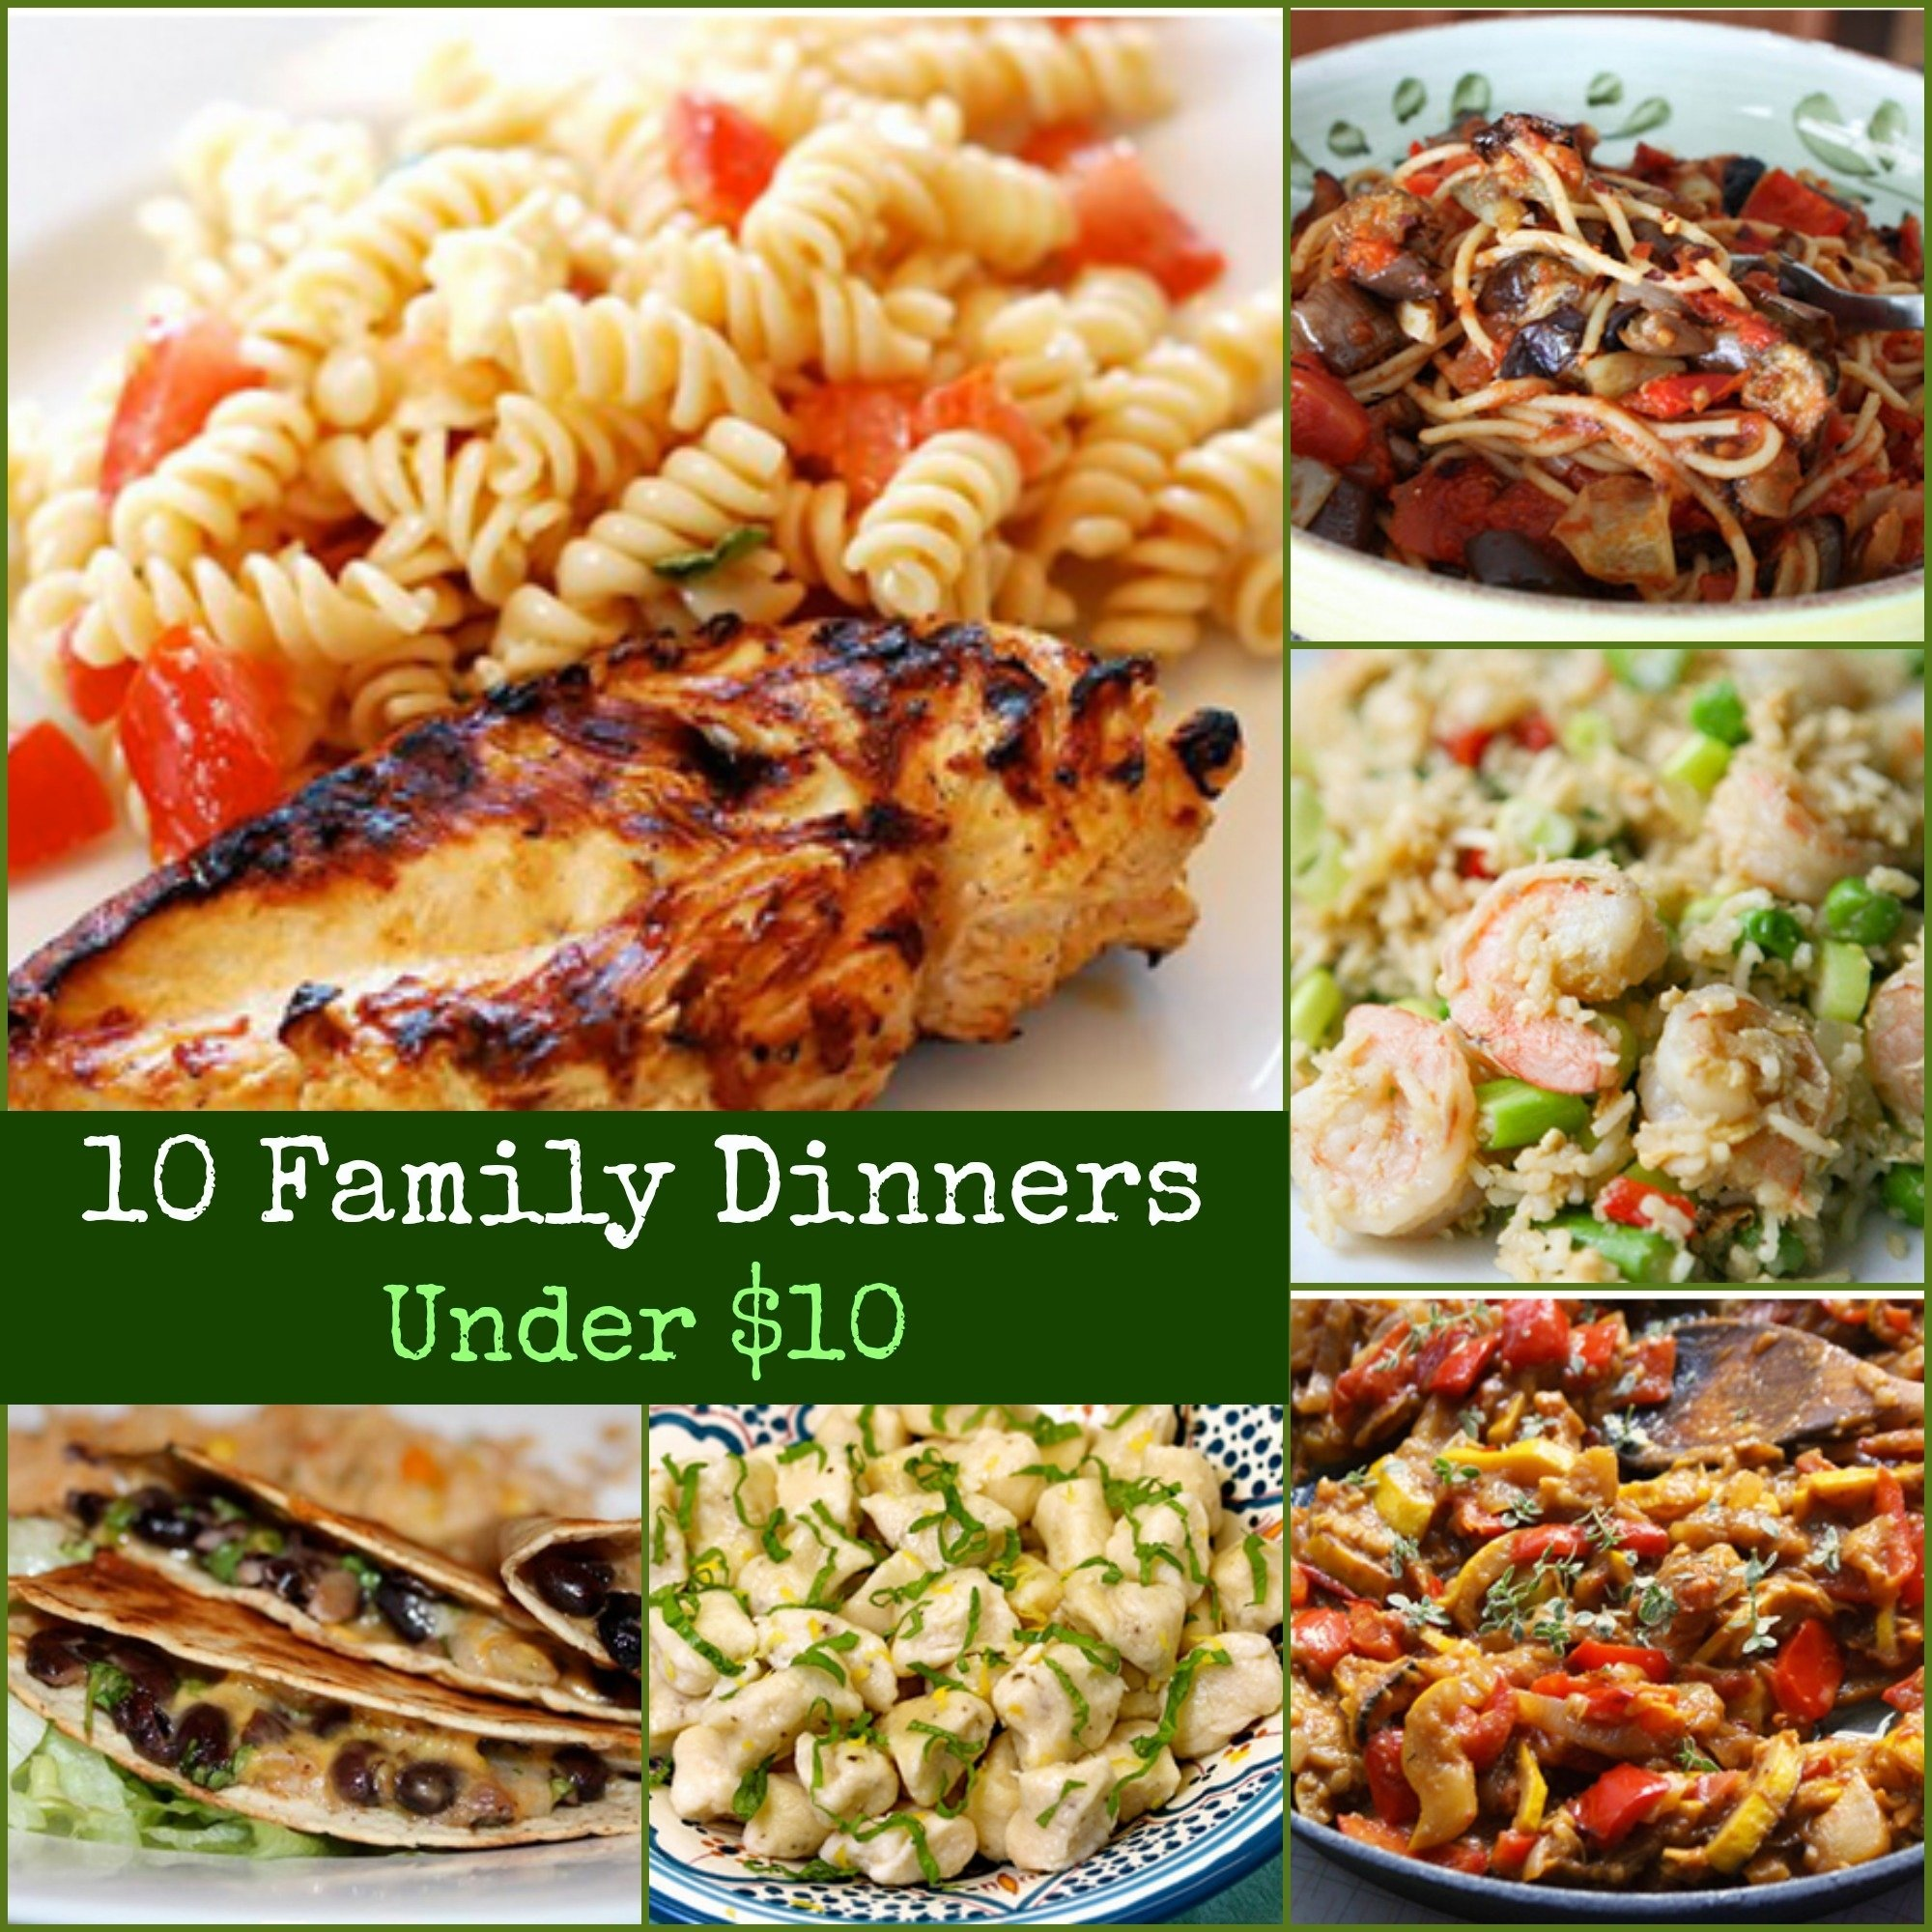 10 Beautiful Cheap Dinner Ideas For 5 download quick easy recipes for dinner for the family food photos 1 2020